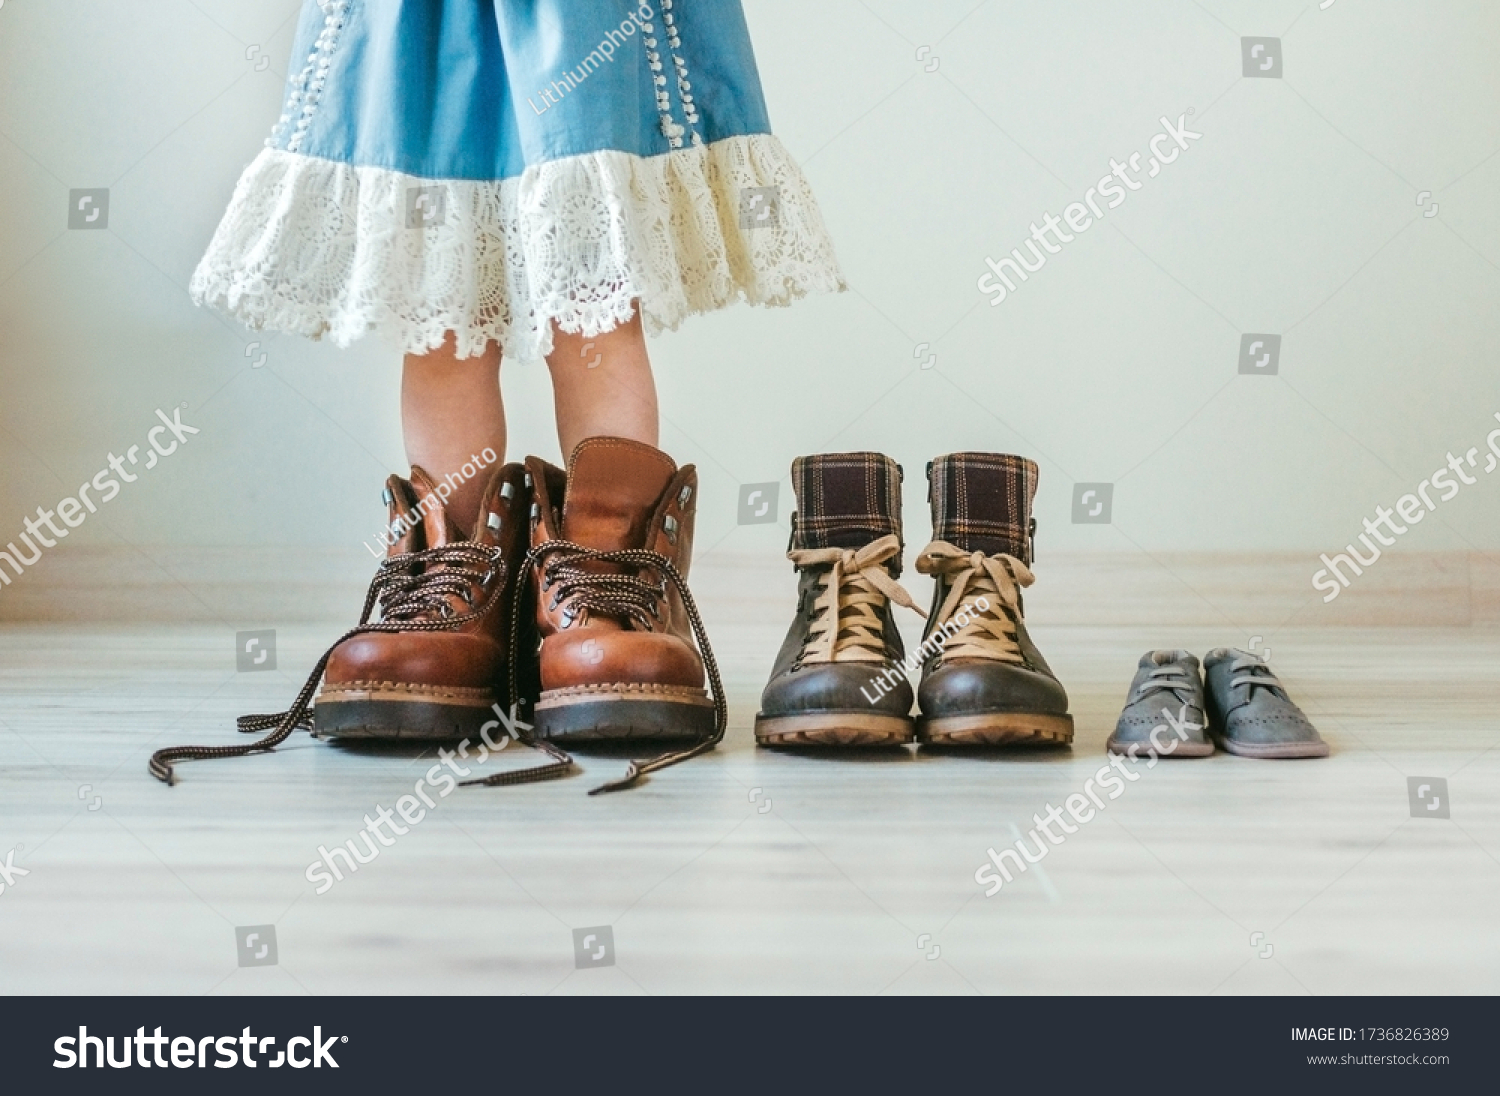 Close up of little girl putting on fathers hiking shoes. Three pairs of shoes for family indoor. #1736826389